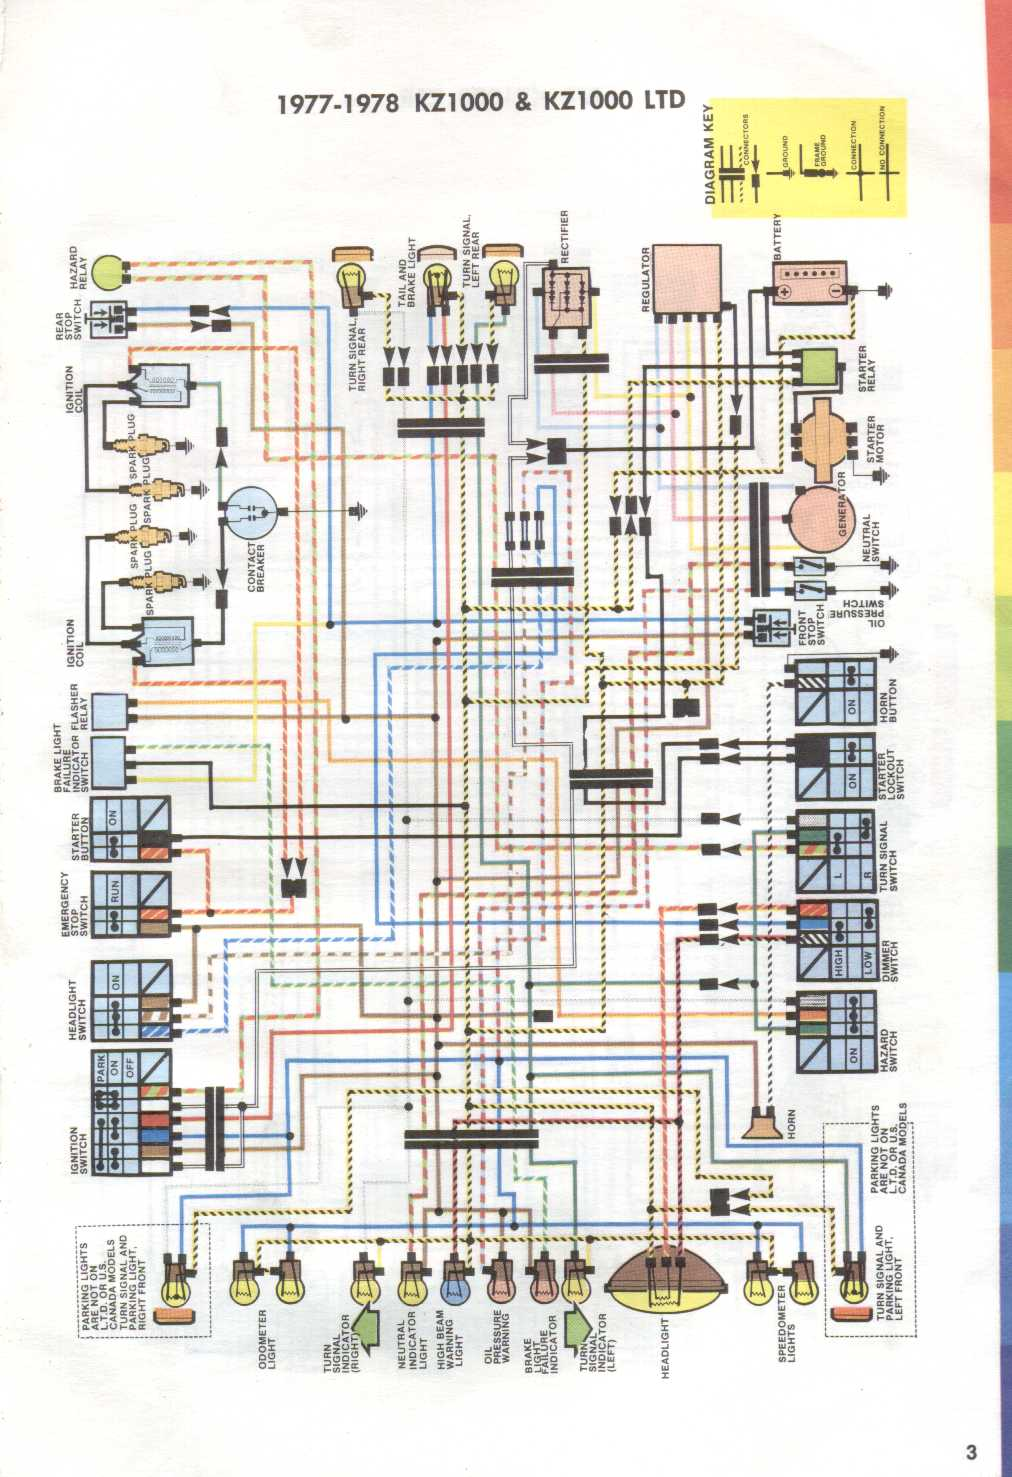 wiring diagram for 1977 \u2013 1978 kawasaki kz1000 and kz1000ltd \u2013 evan Vintage Kawasaki Z1000 color coded wiring diagram for a 1977 1978 kawasaki kz1000 and kz1000 ltd models mar 30